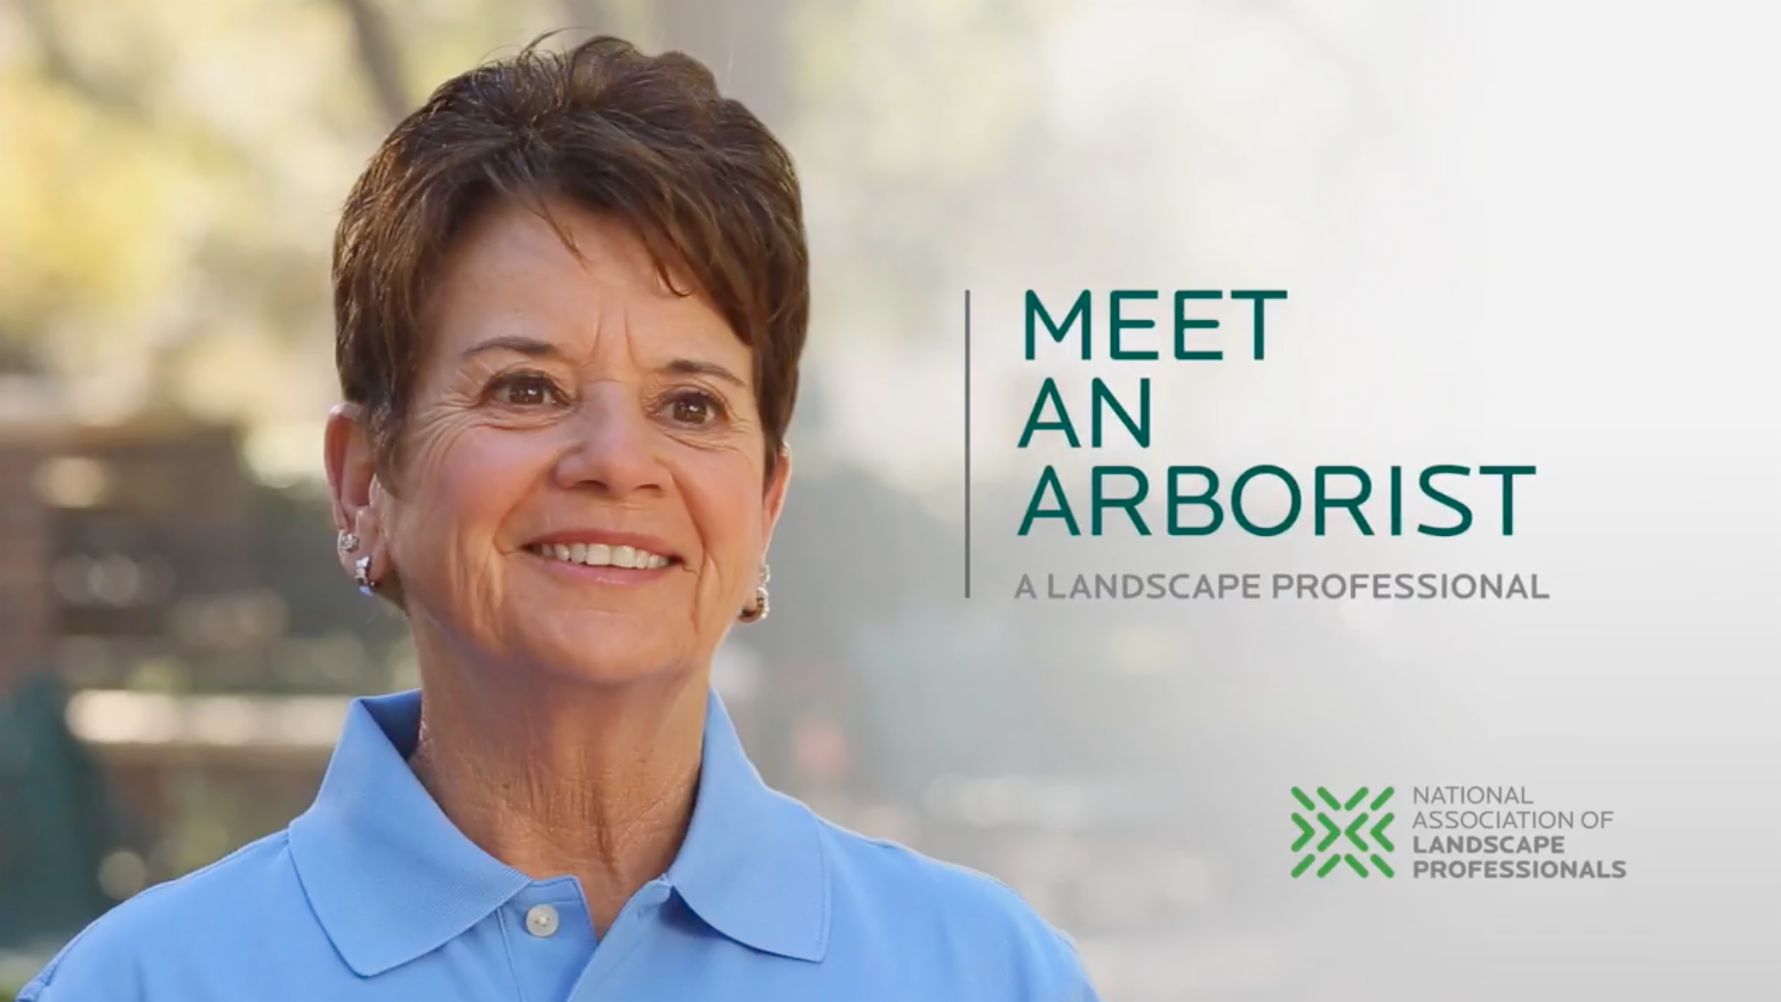 Meet an Arborist - Landscape Industry Testimonial Videos